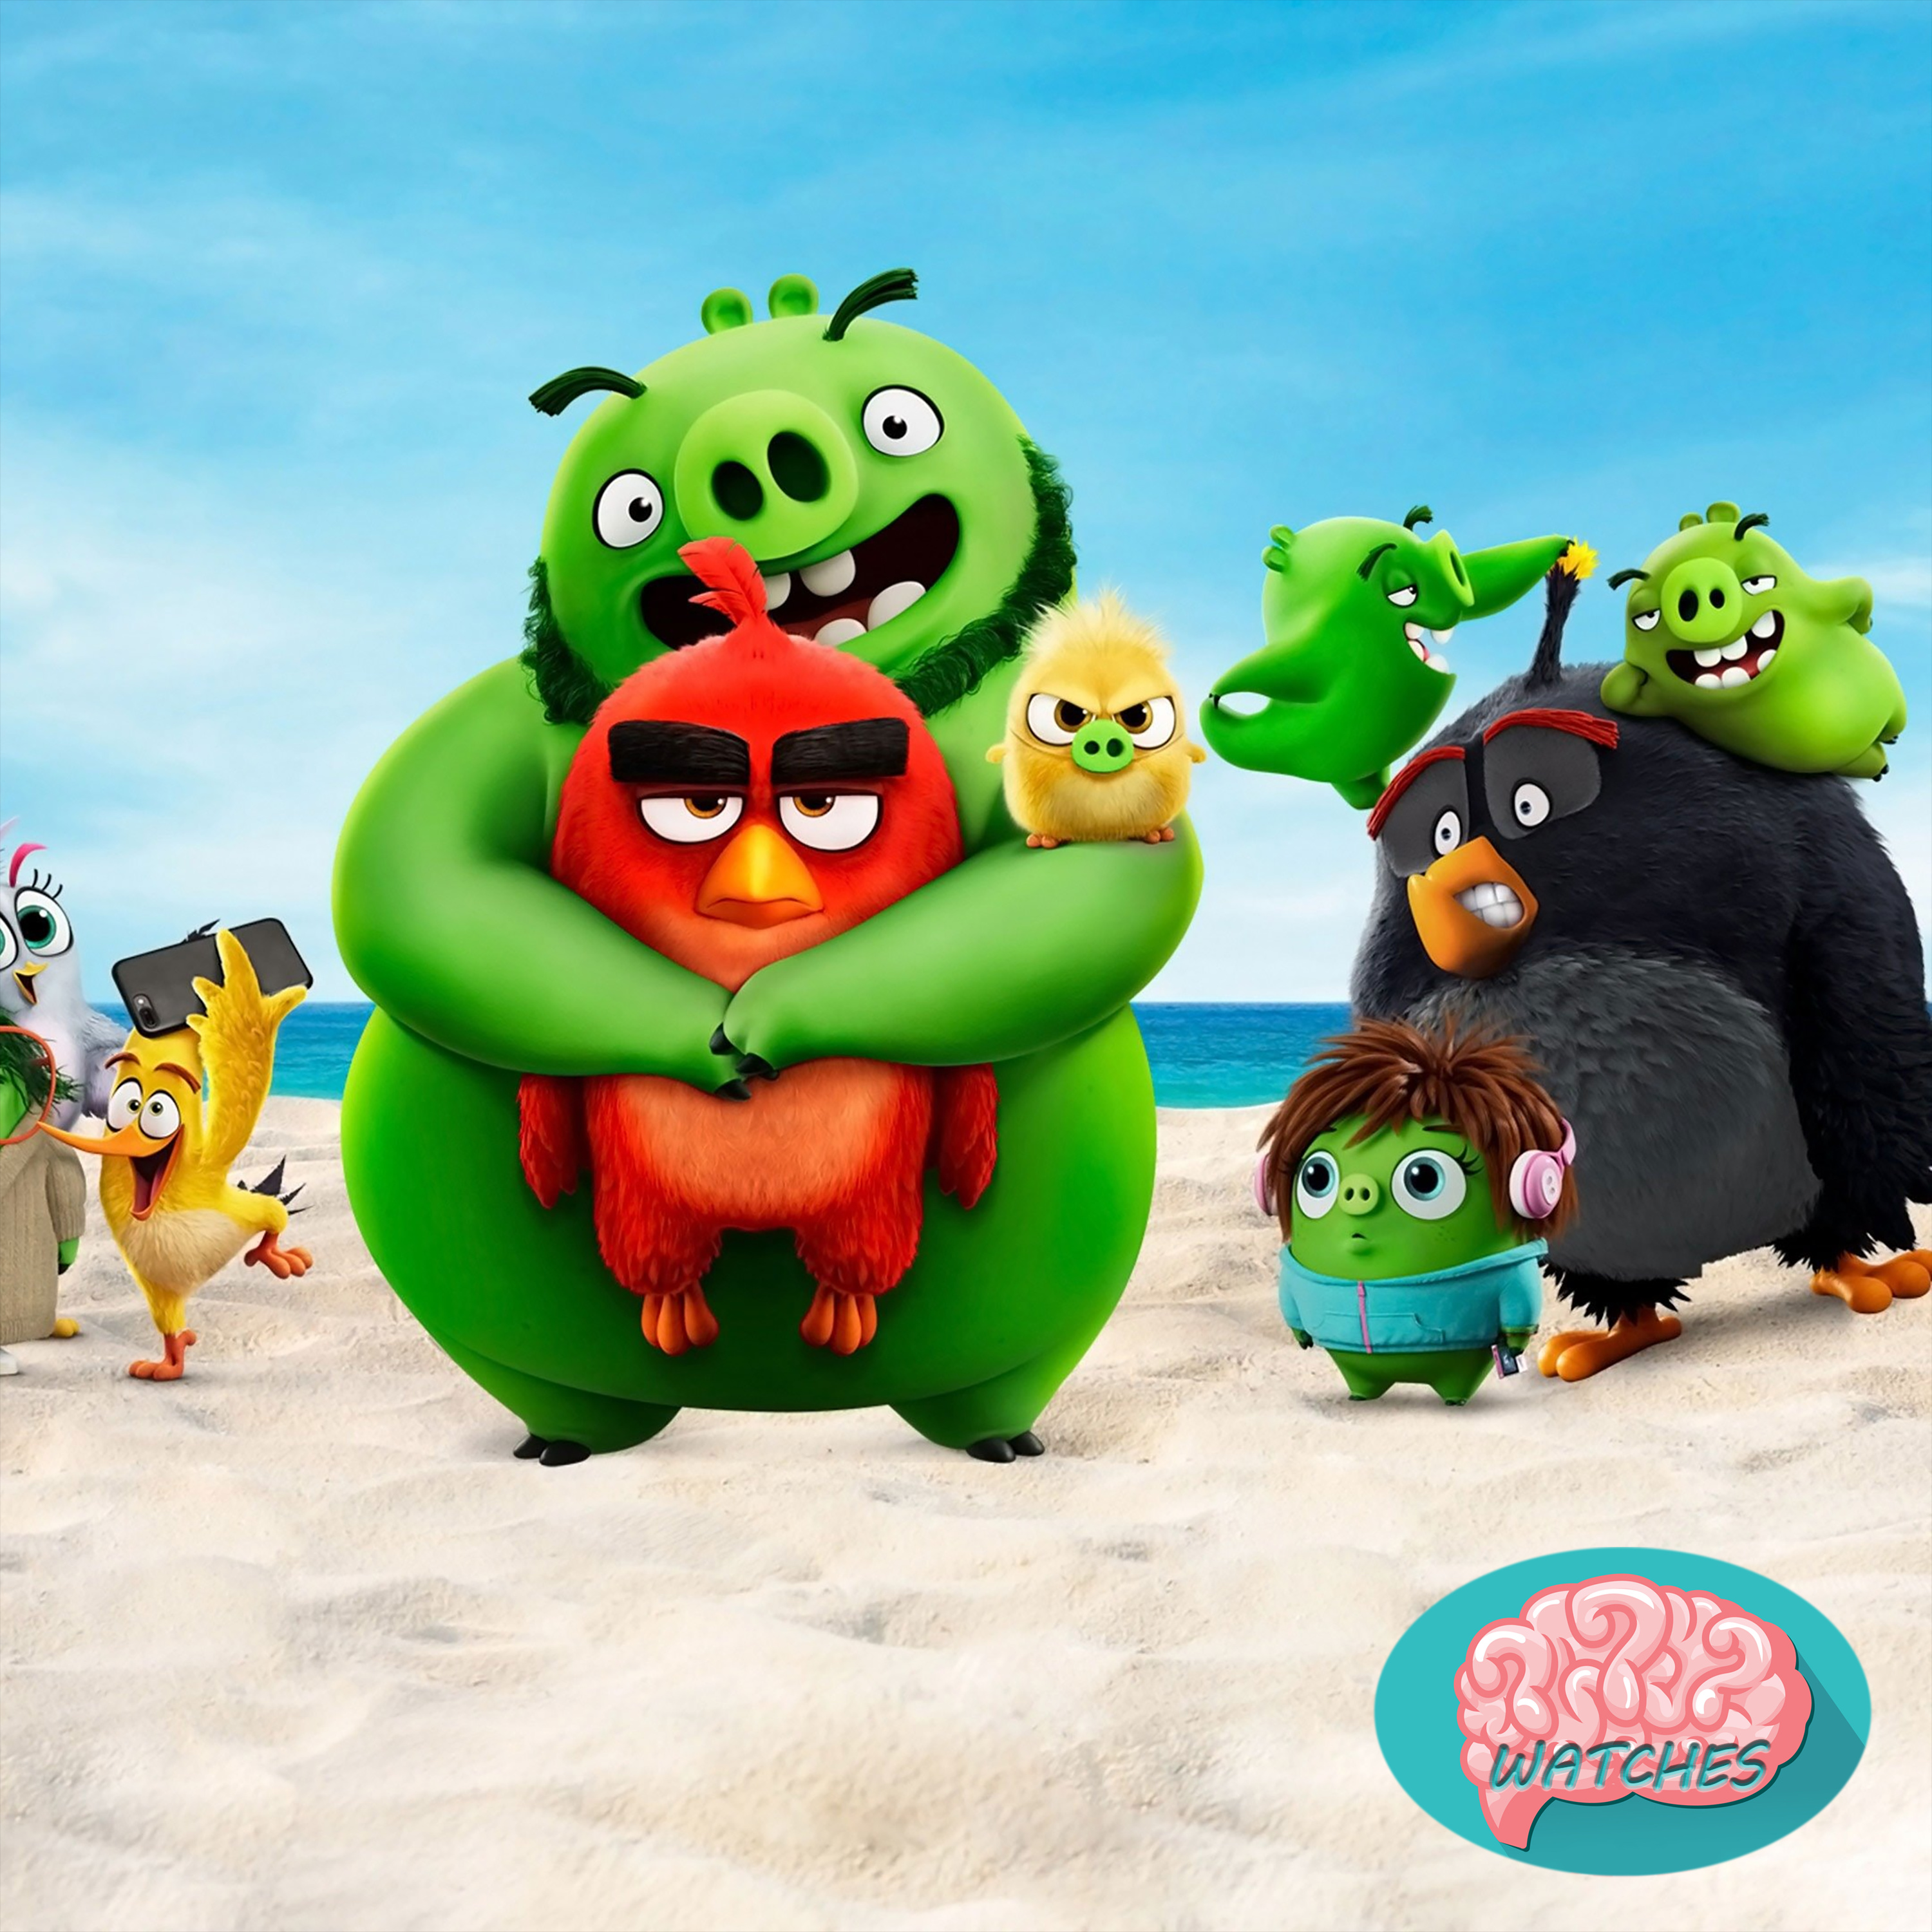 Watches #41: The Angry Birds Movie 2 (2019)